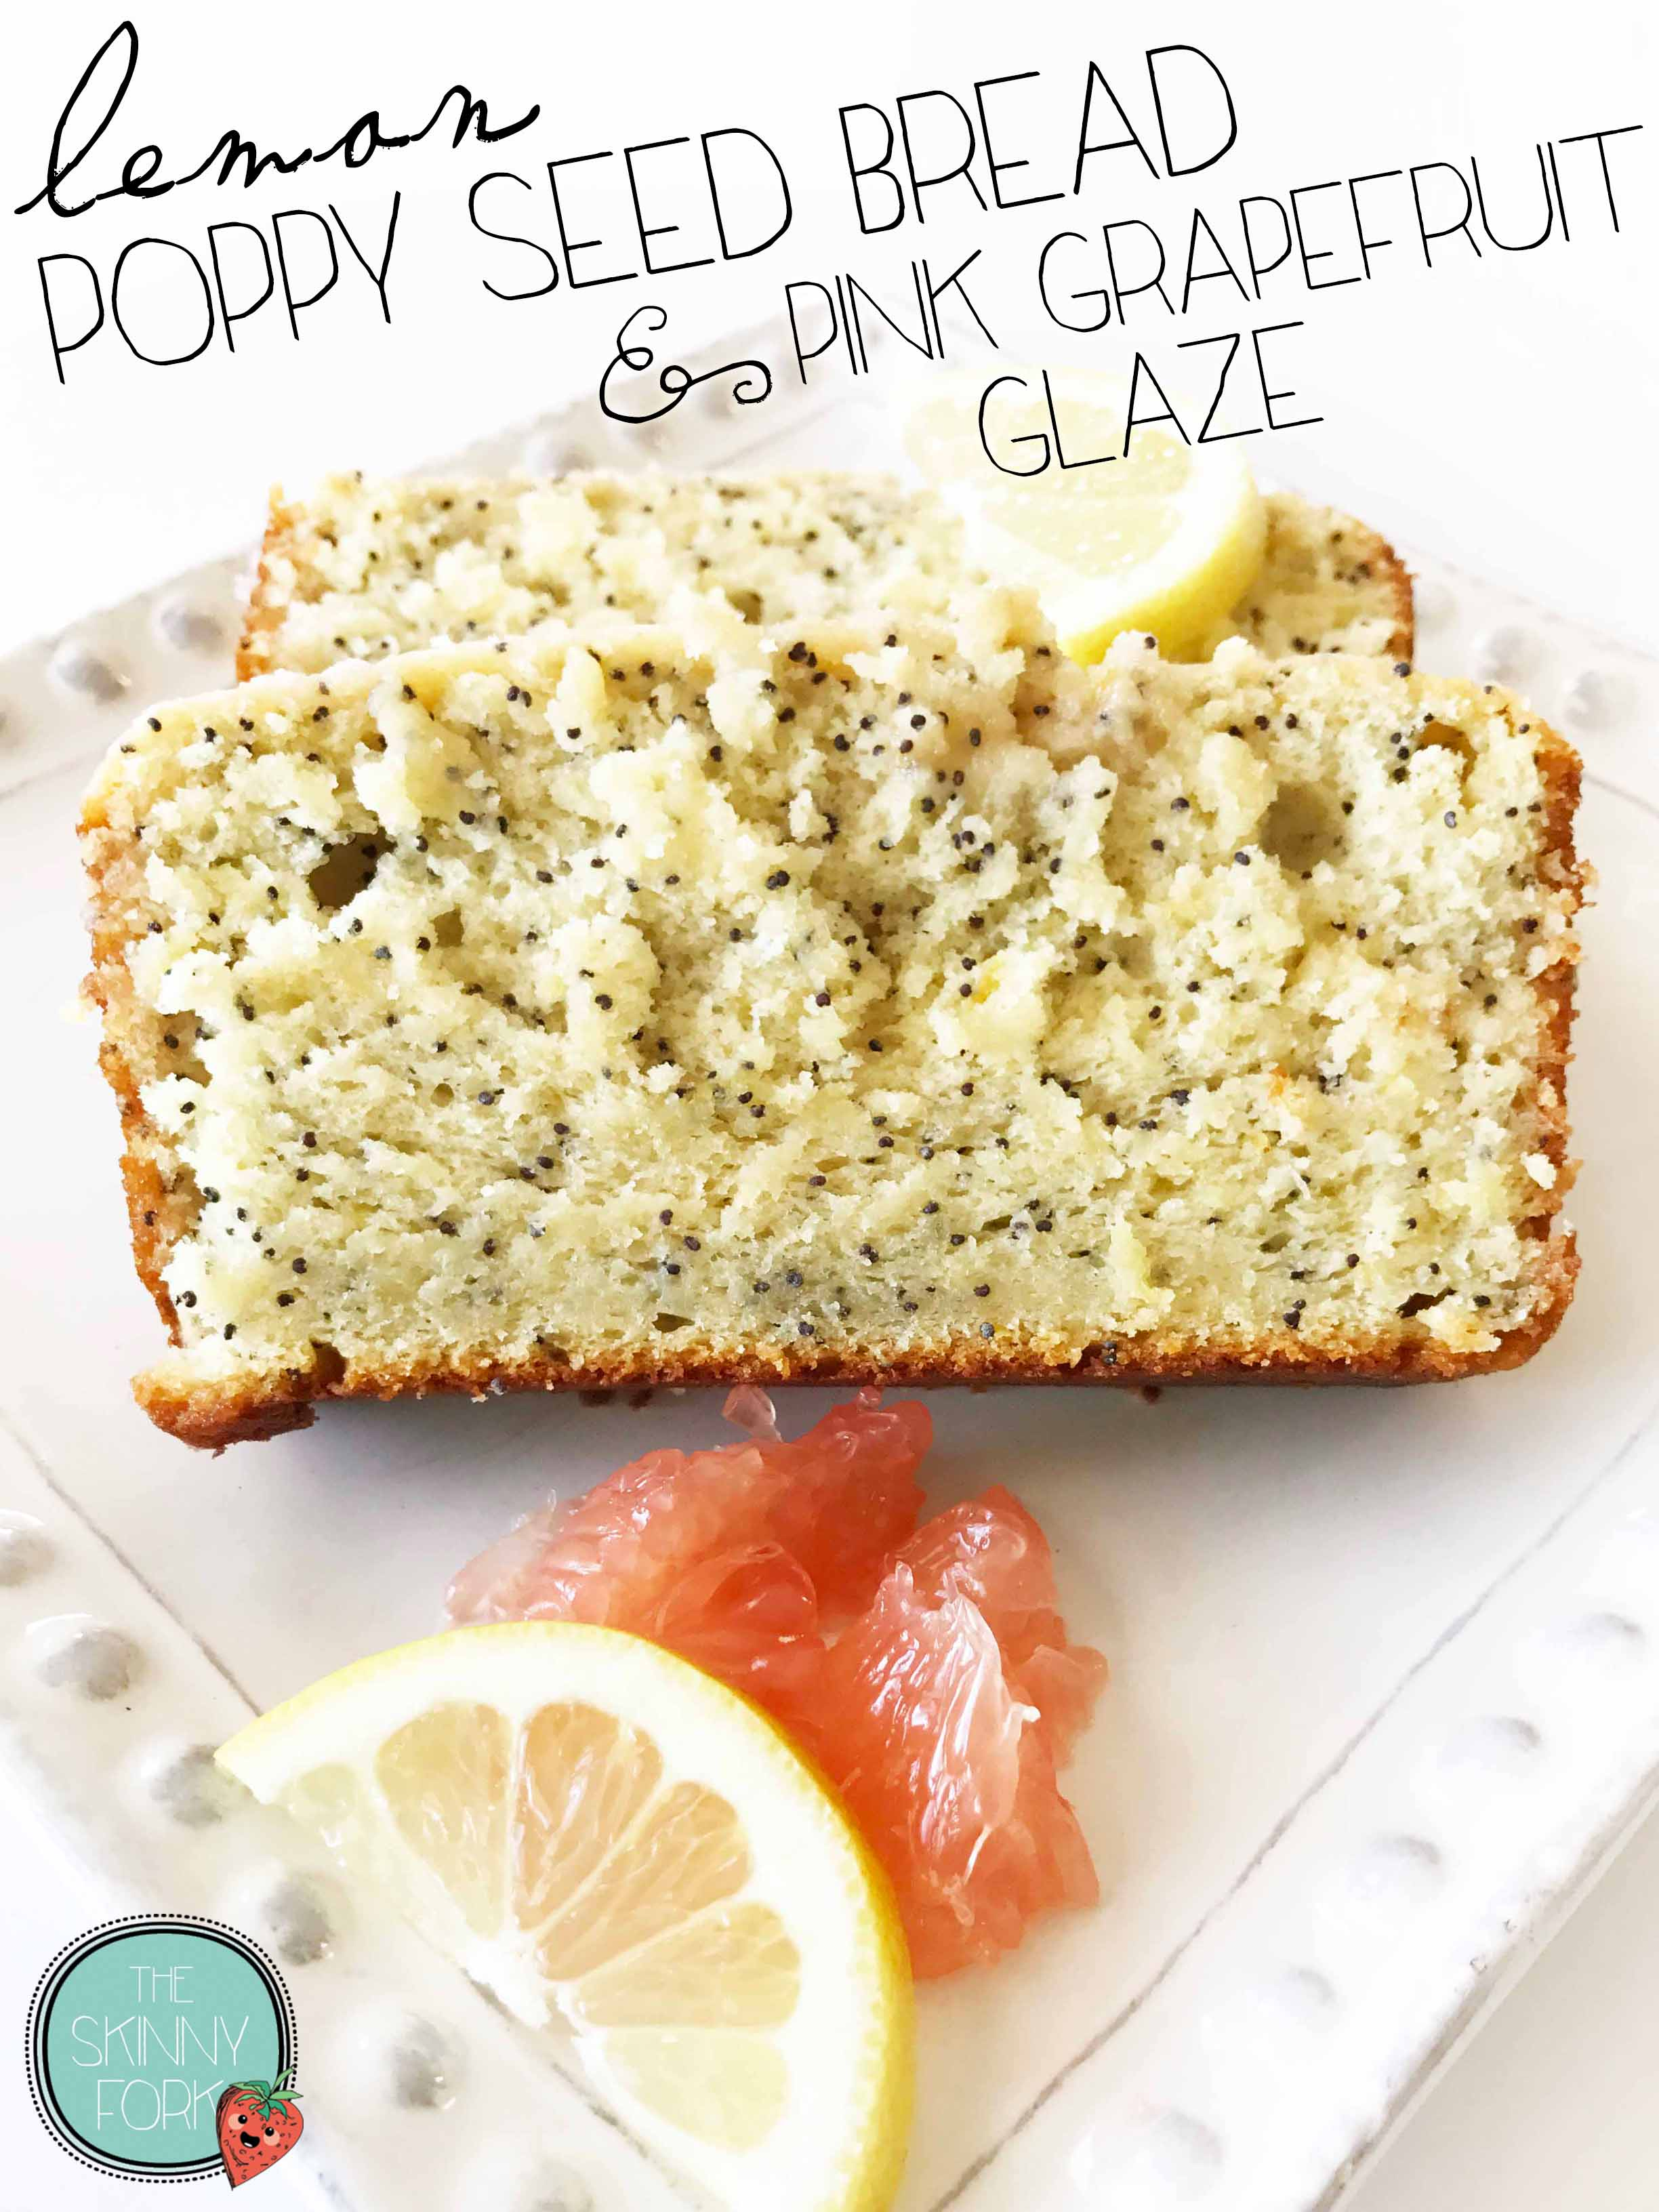 lemon-poppy-seed-bread-pin.jpg